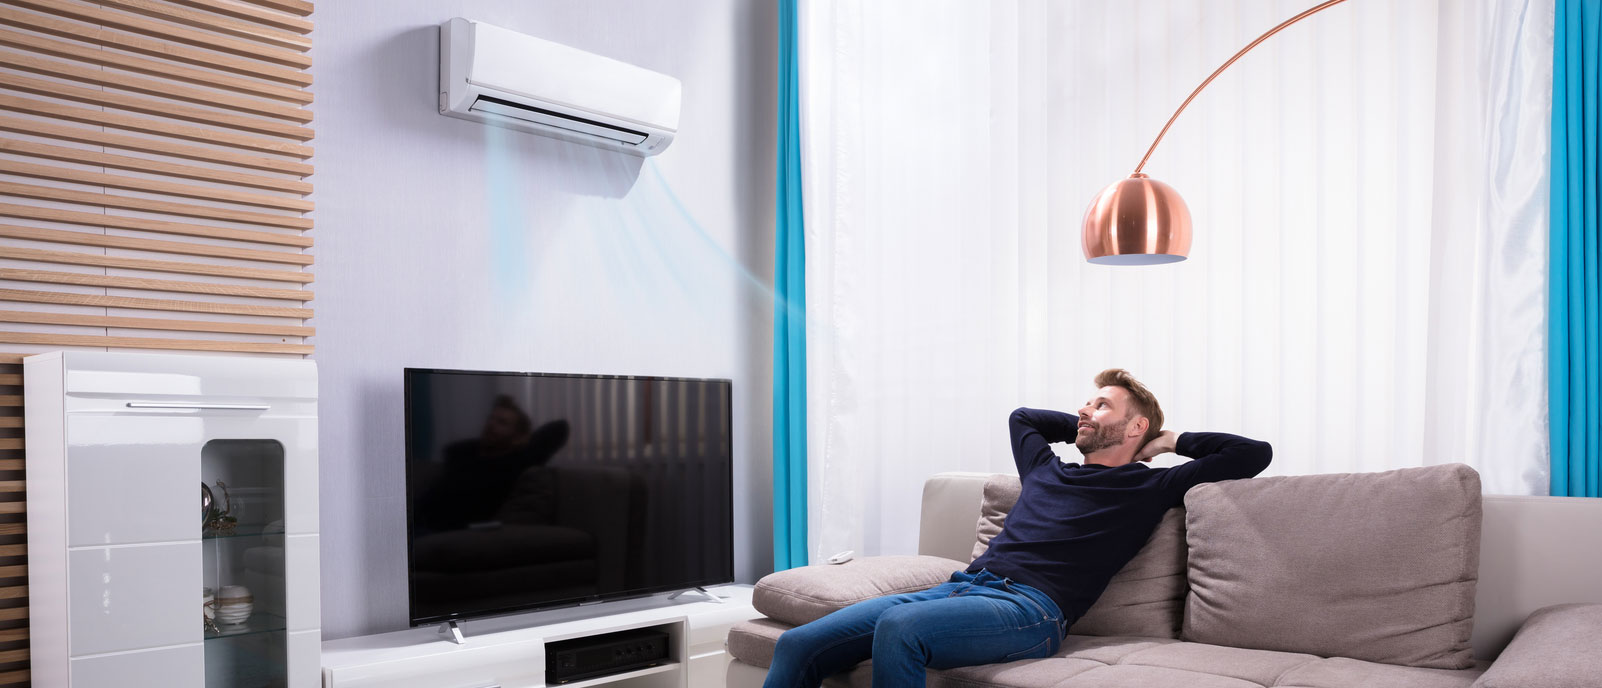 5 Advantages of Ductless Heating & Cooling